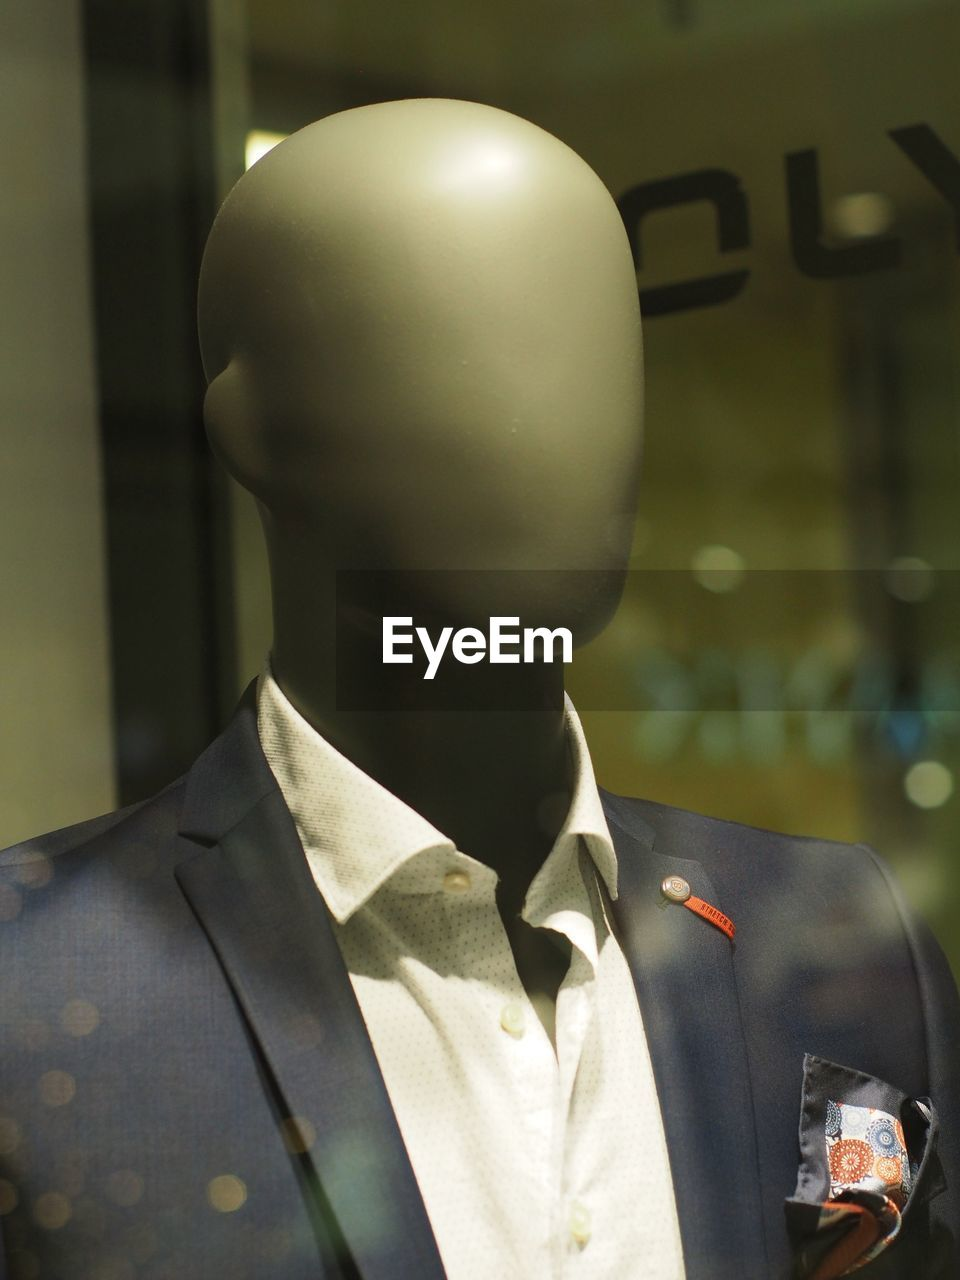 one person, clothing, headshot, portrait, men, focus on foreground, uniform, real people, mannequin, glass - material, occupation, day, business, transparent, indoors, close-up, looking, suit, retail display, responsibility, government